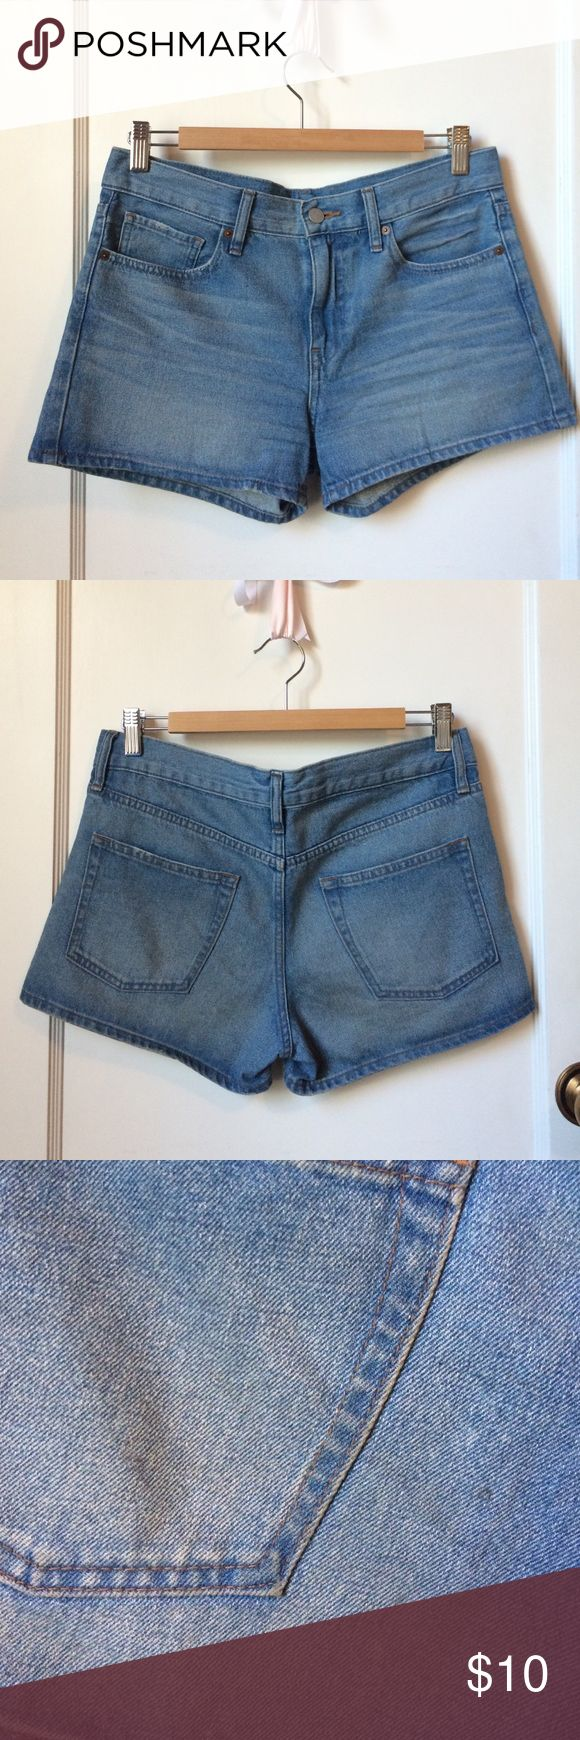 Uniqlo Jean Shorts! Jean Shorts from Uniqlo! Good condition (worn twice) except for 3 small black spots as seen in last picture. Not too noticeable...might come out with stain remover (I only use eco friendly laundry detergent). No trades. Reasonable offers accepted. Uniqlo Shorts Jean Shorts